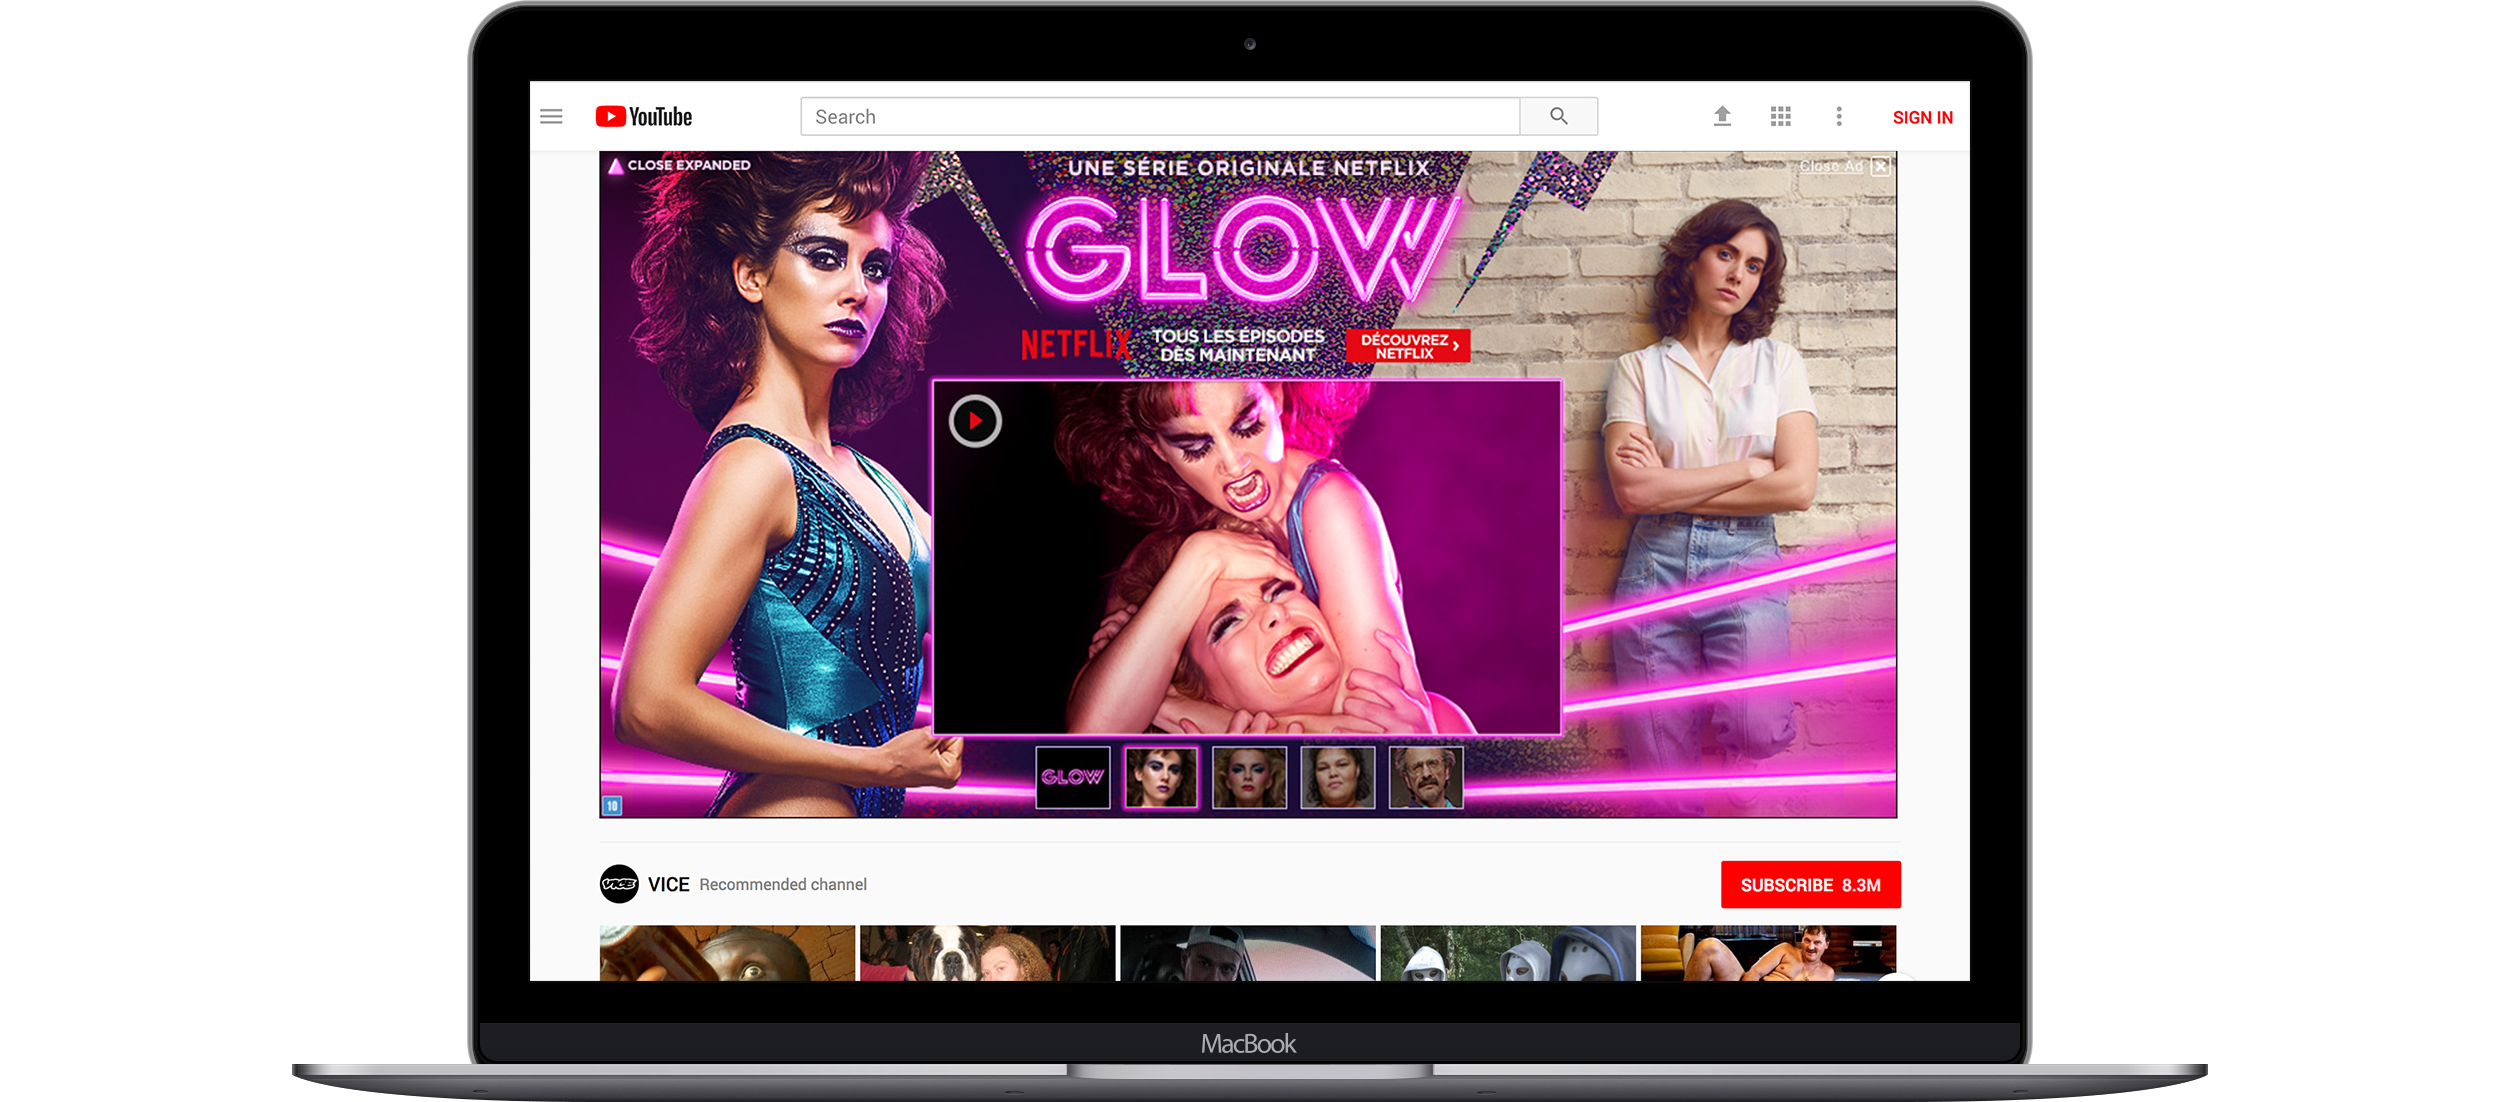 GLOW_YT_MASTHEAD_Expanded02.png